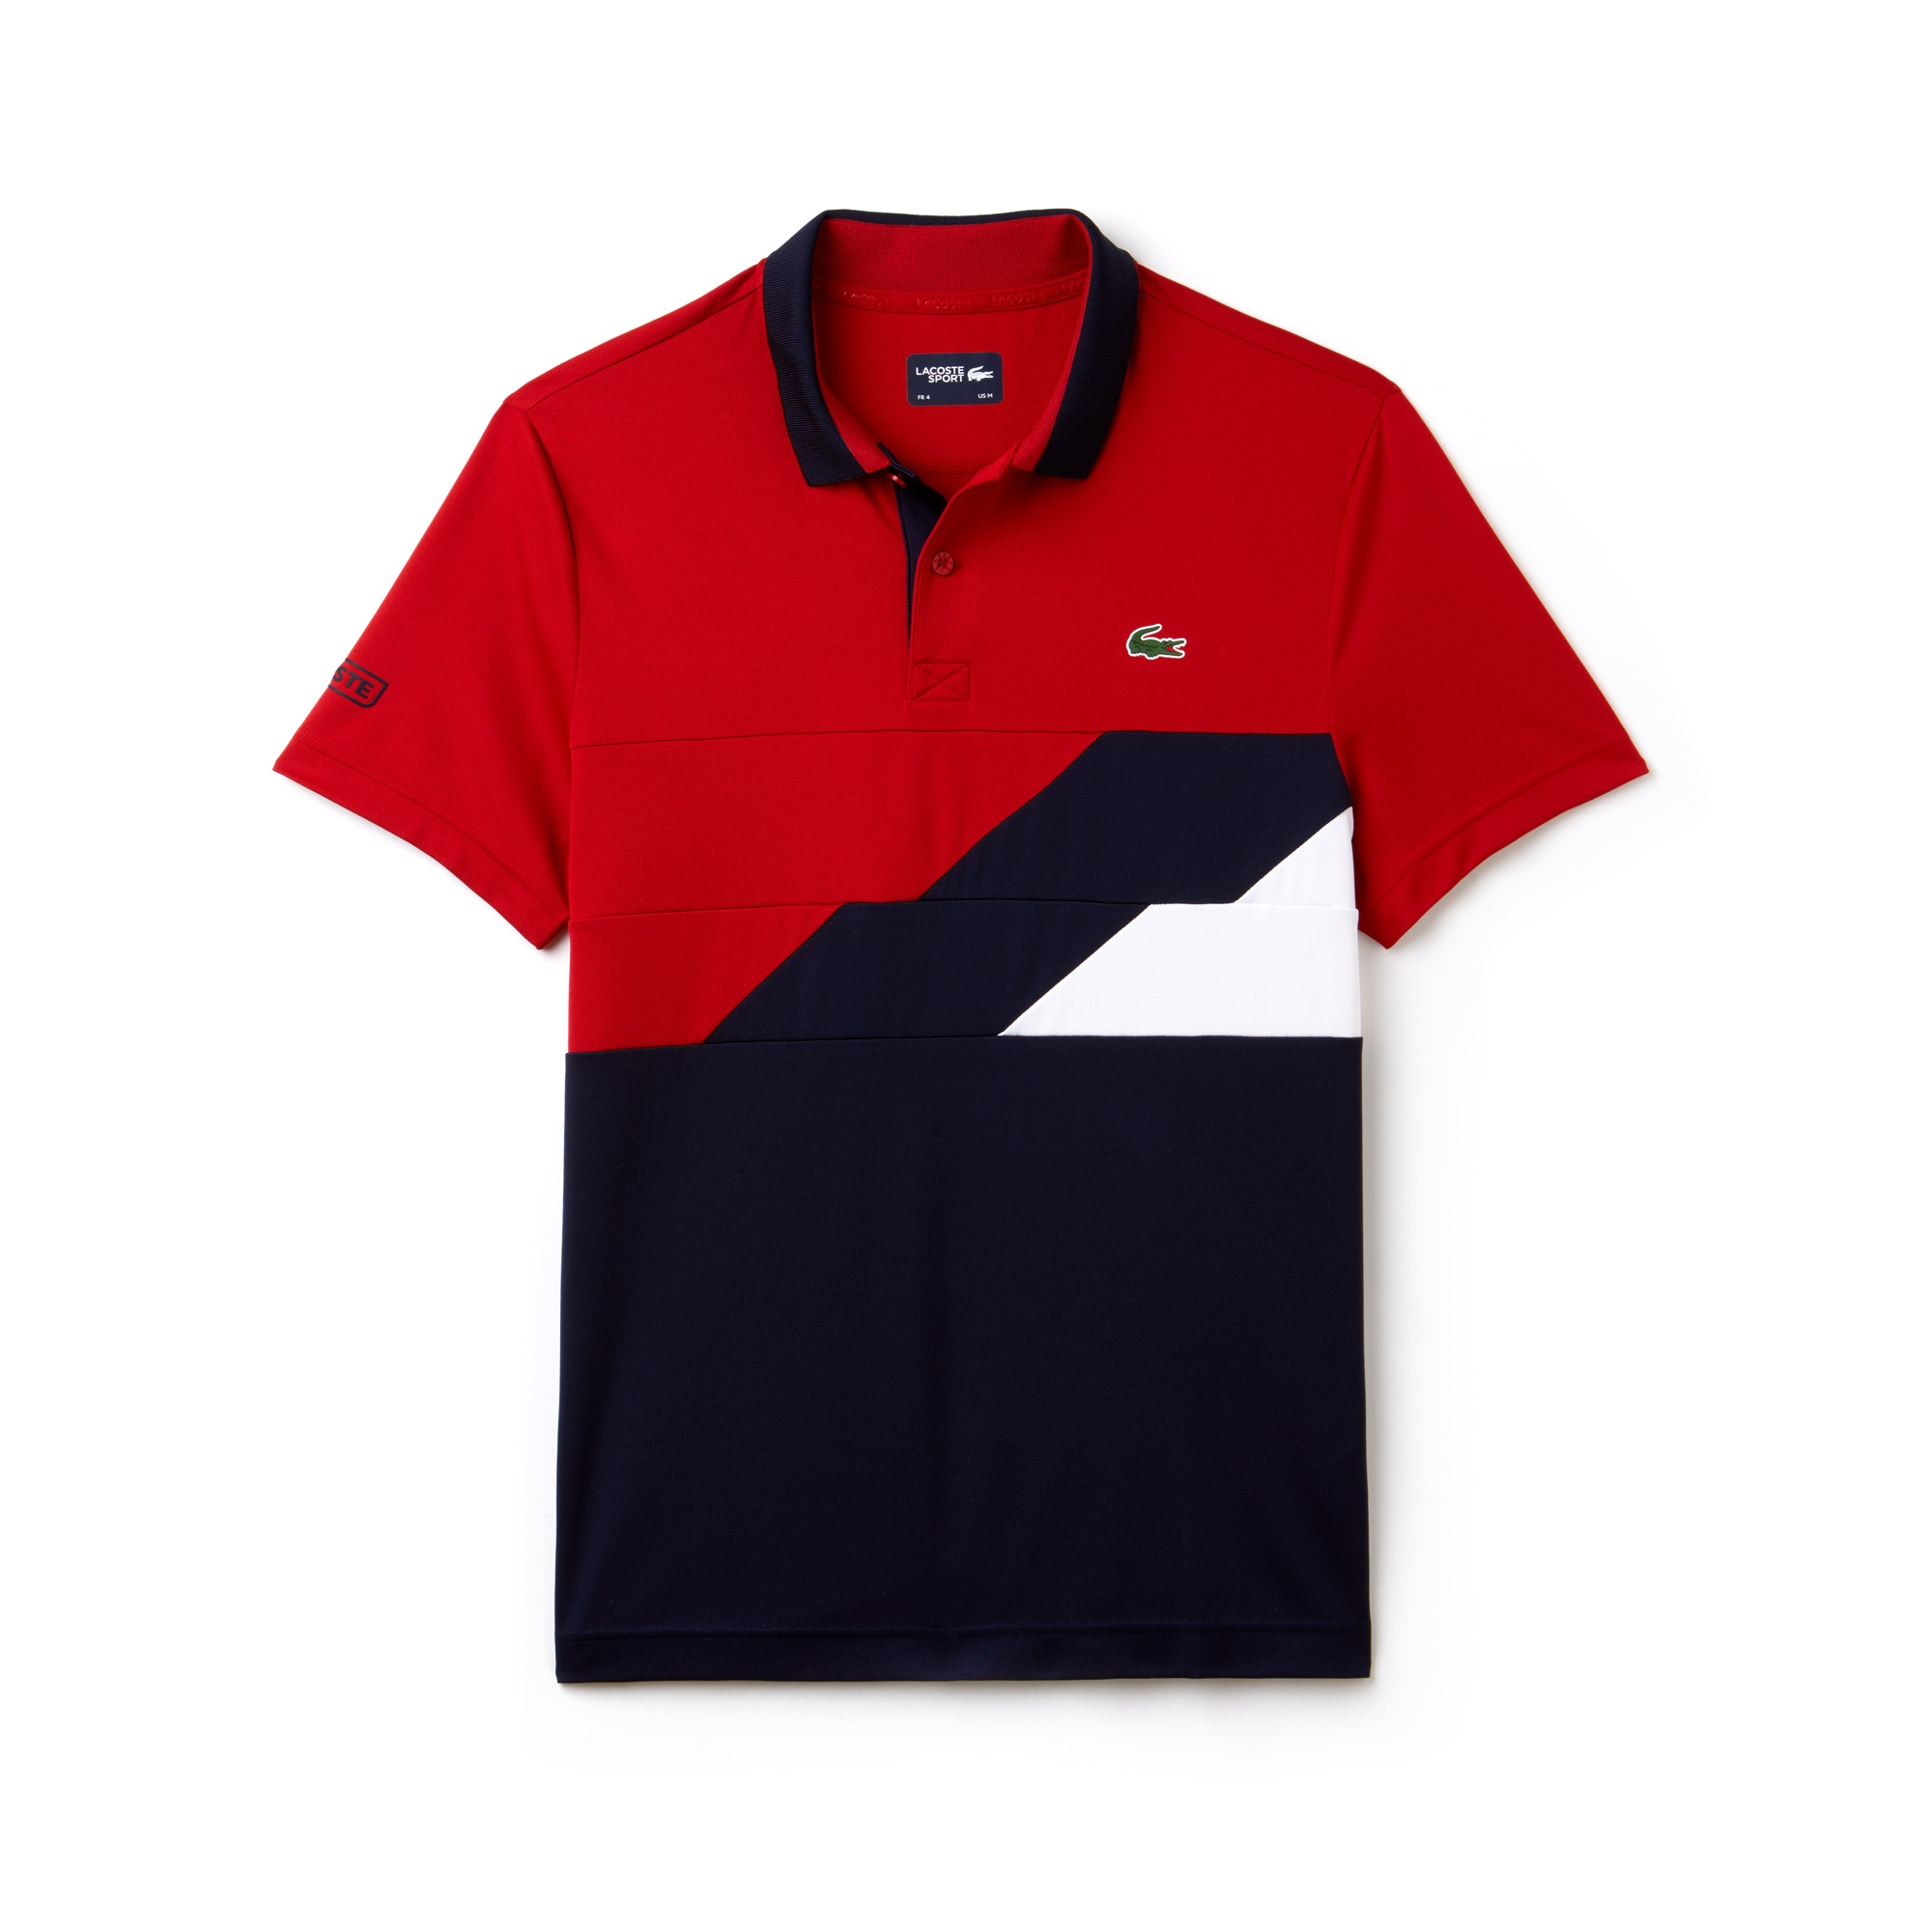 라코스테 Lacoste Mens SPORT Colorblock Bands Technical Pique Tennis Polo,lighthouse red/navy blue-